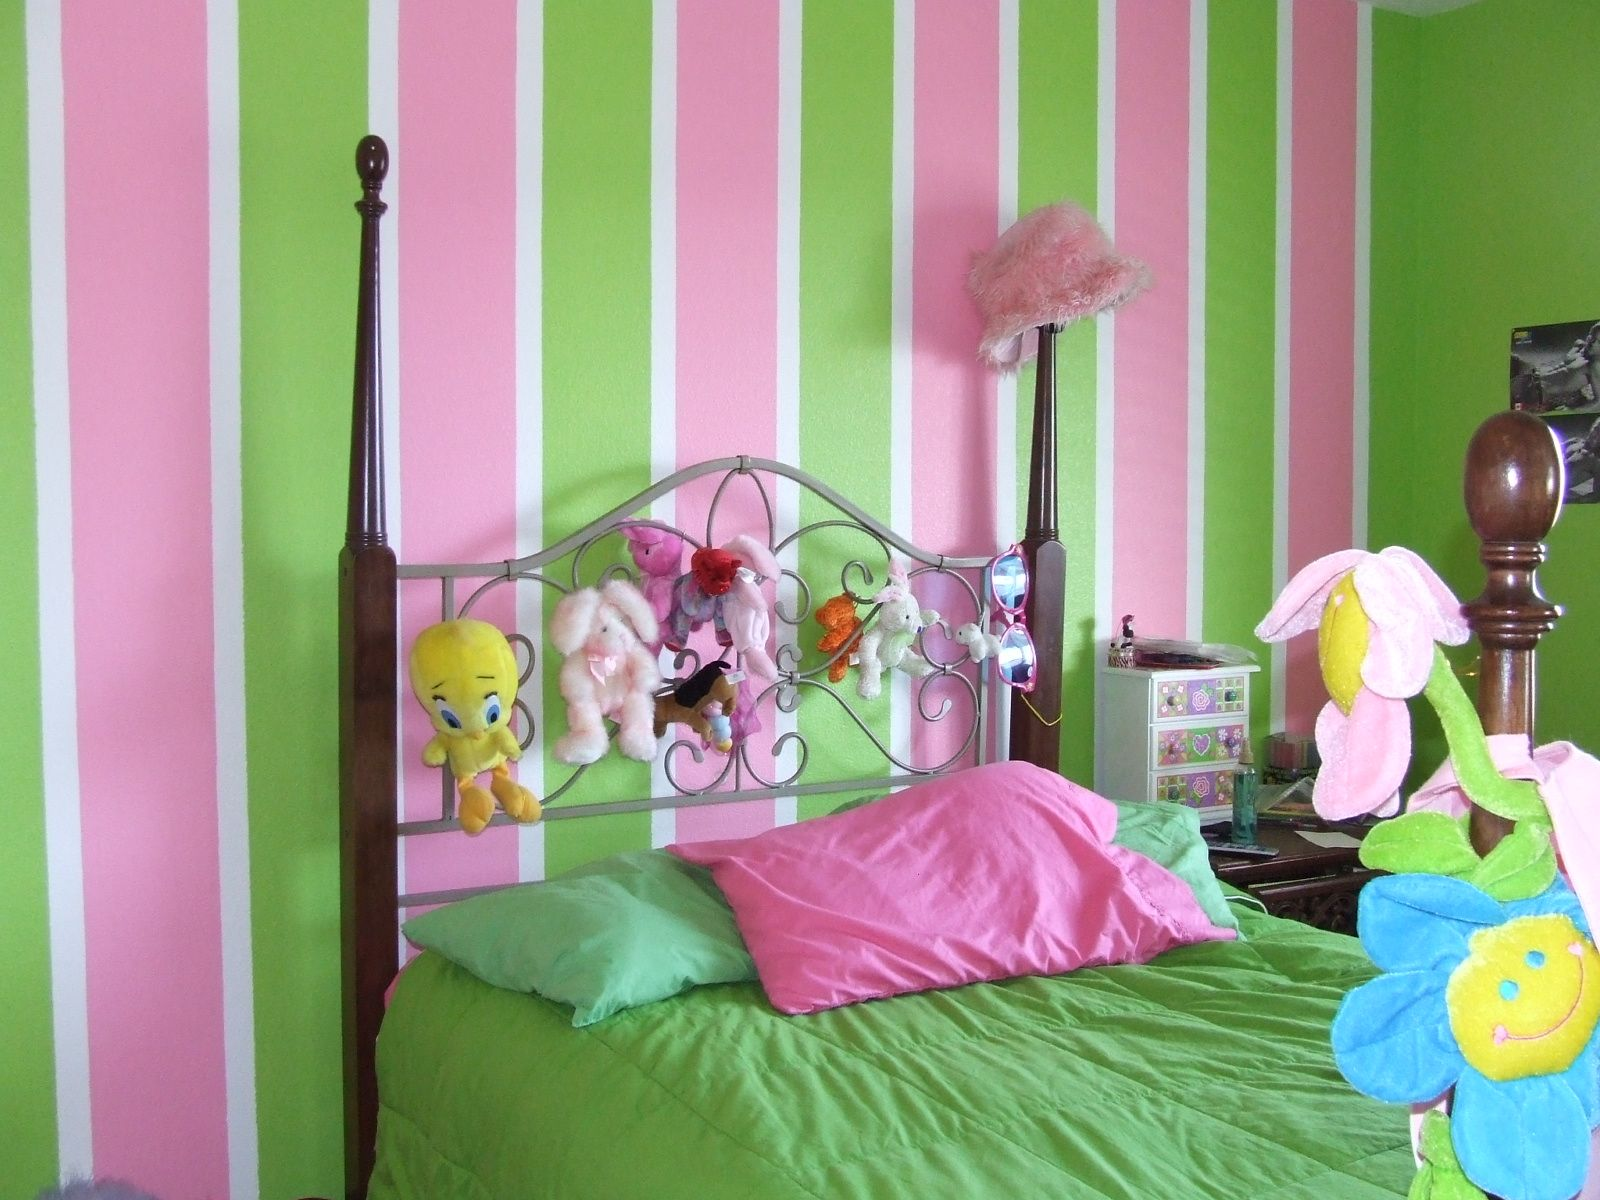 Girls Bedroom Paint Ideas Stripes tona painting job pictures stripes awesome girl room idea plus